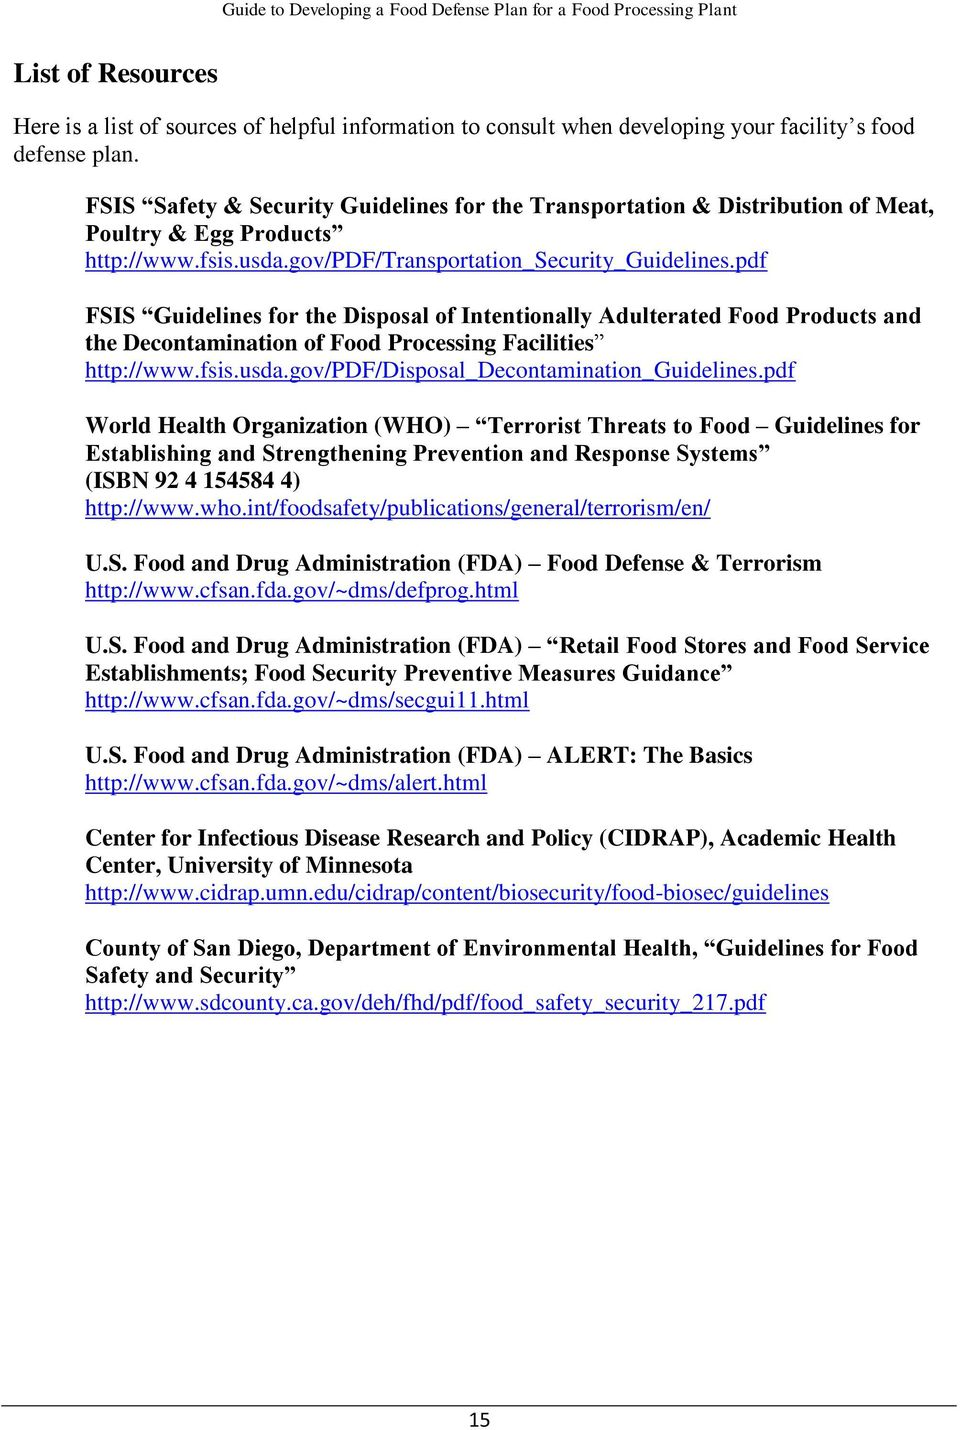 pdf FSIS Guidelines for the Disposal of Intentionally Adulterated Food Products and the Decontamination of Food Processing Facilities http://www.fsis.usda.gov/pdf/disposal_decontamination_guidelines.